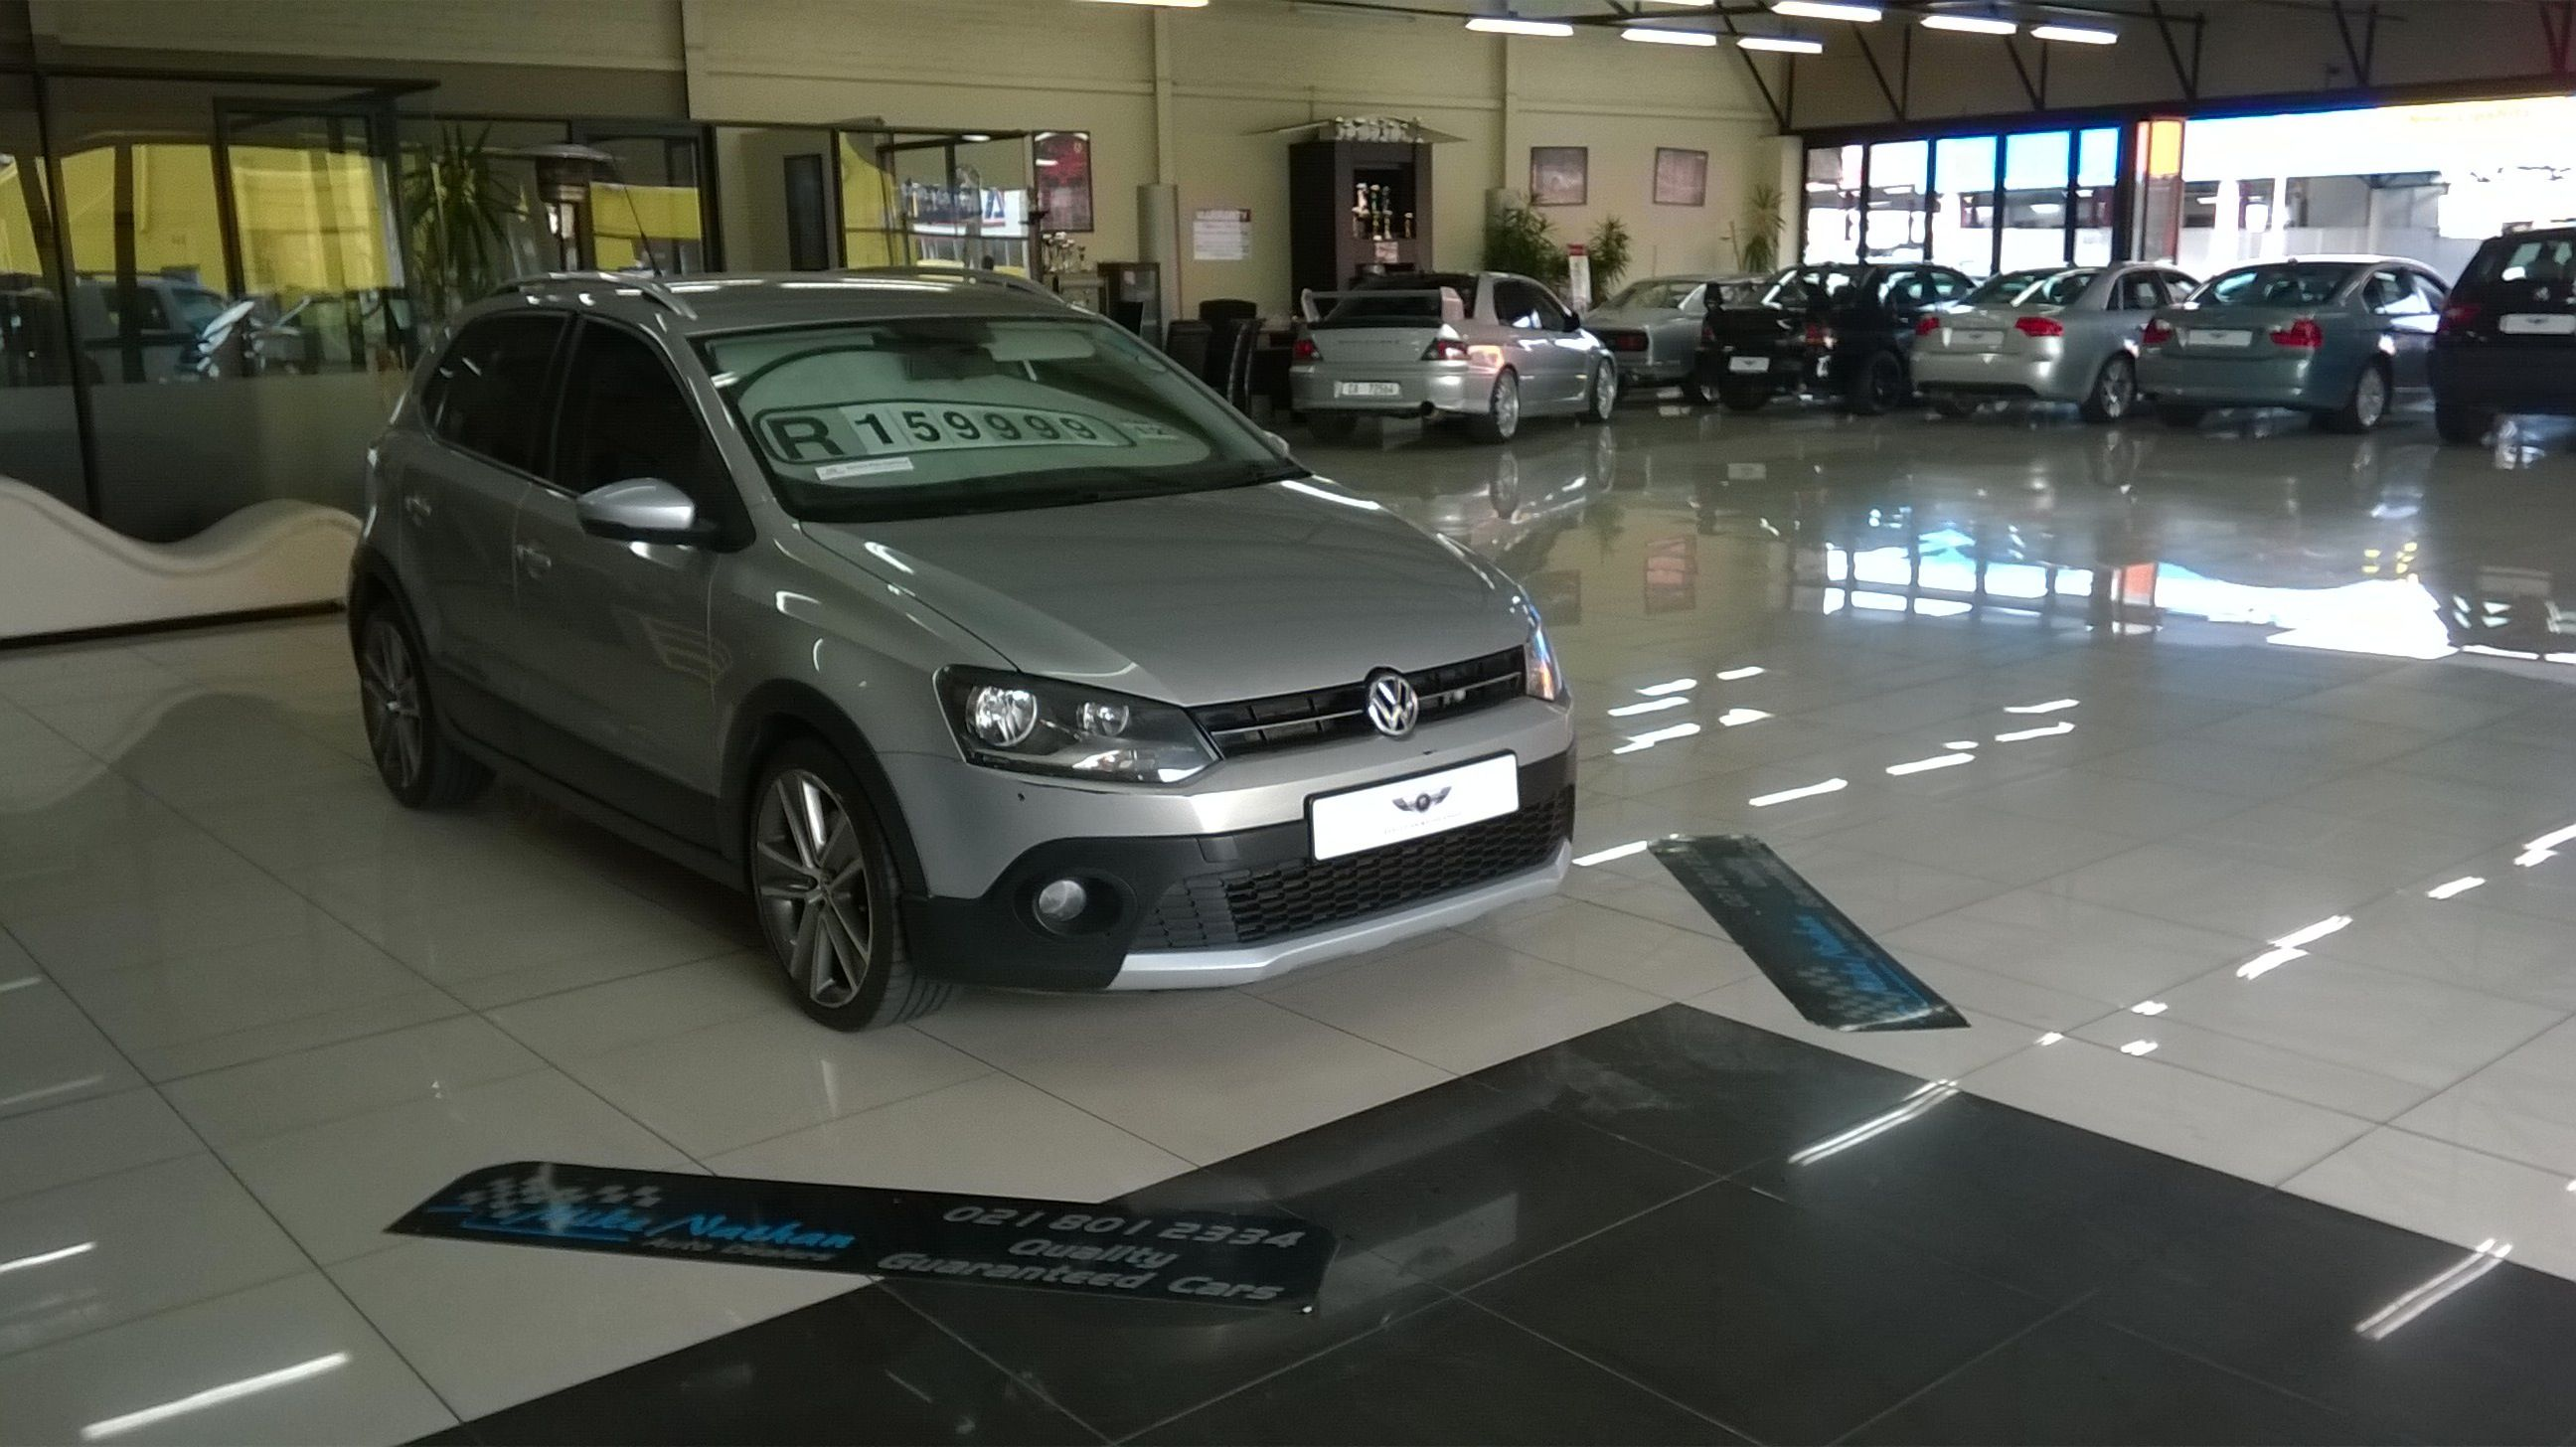 2012 VW POLO 1.6 TDI CROSS R159995 Tdi, Volkswagen